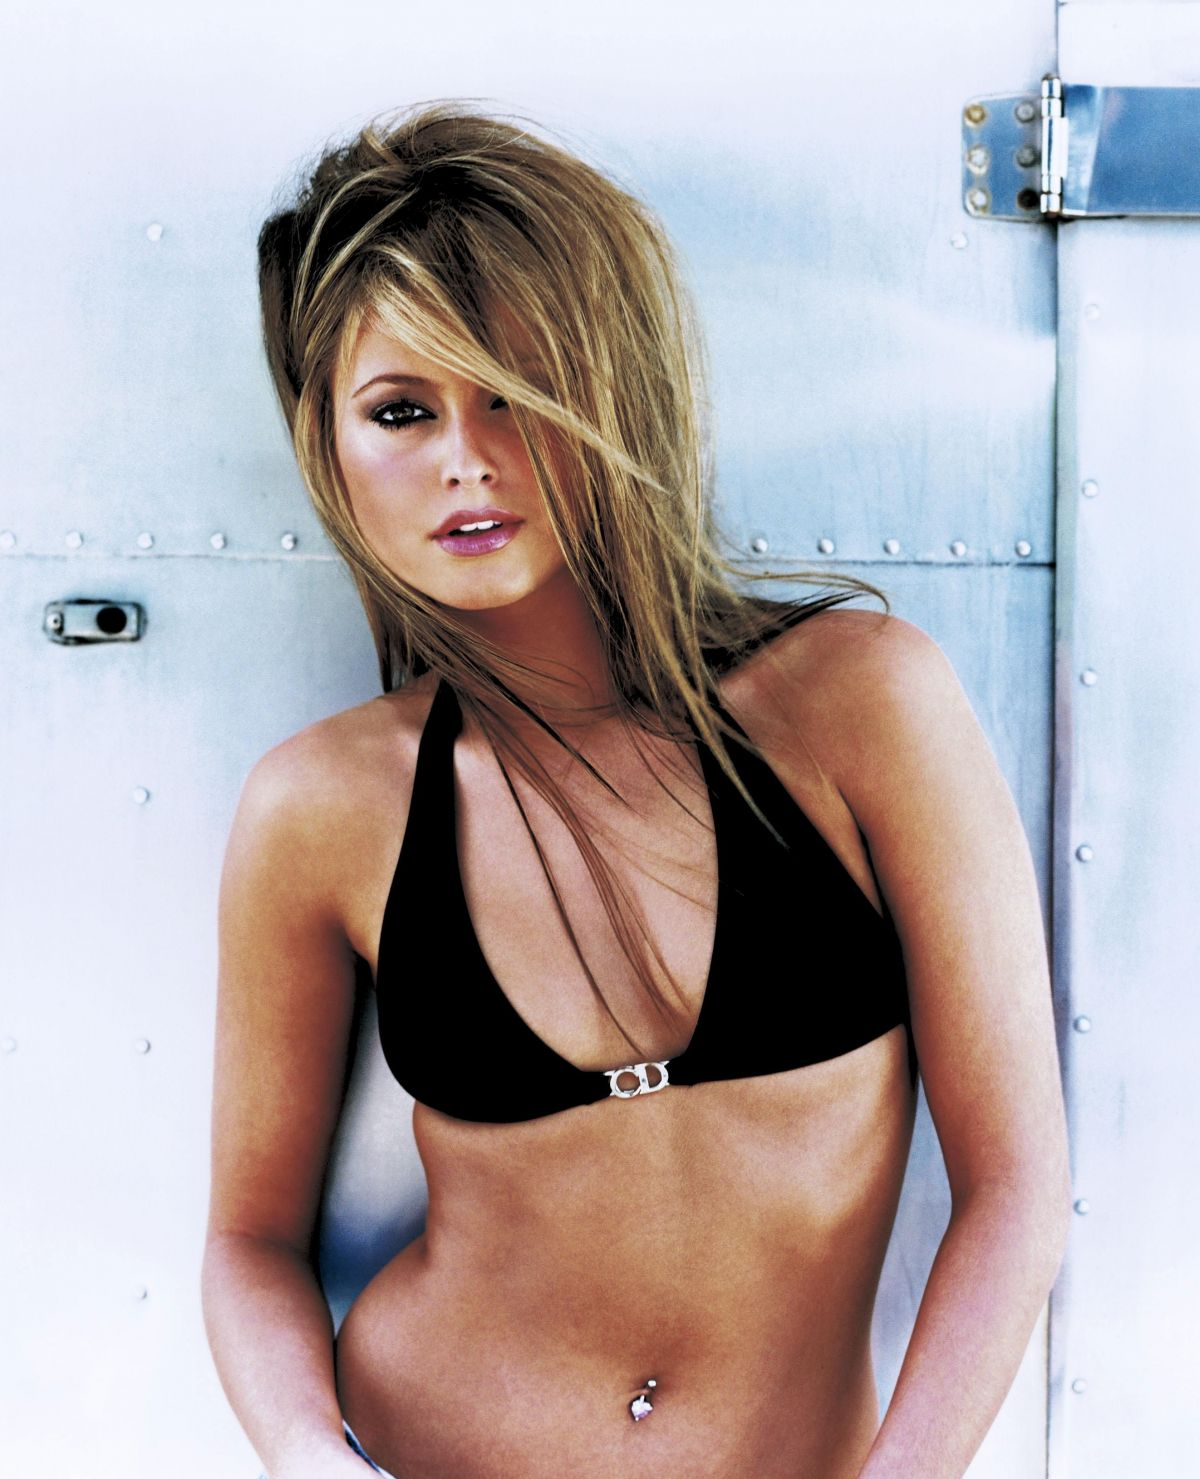 Holly valance bikini that